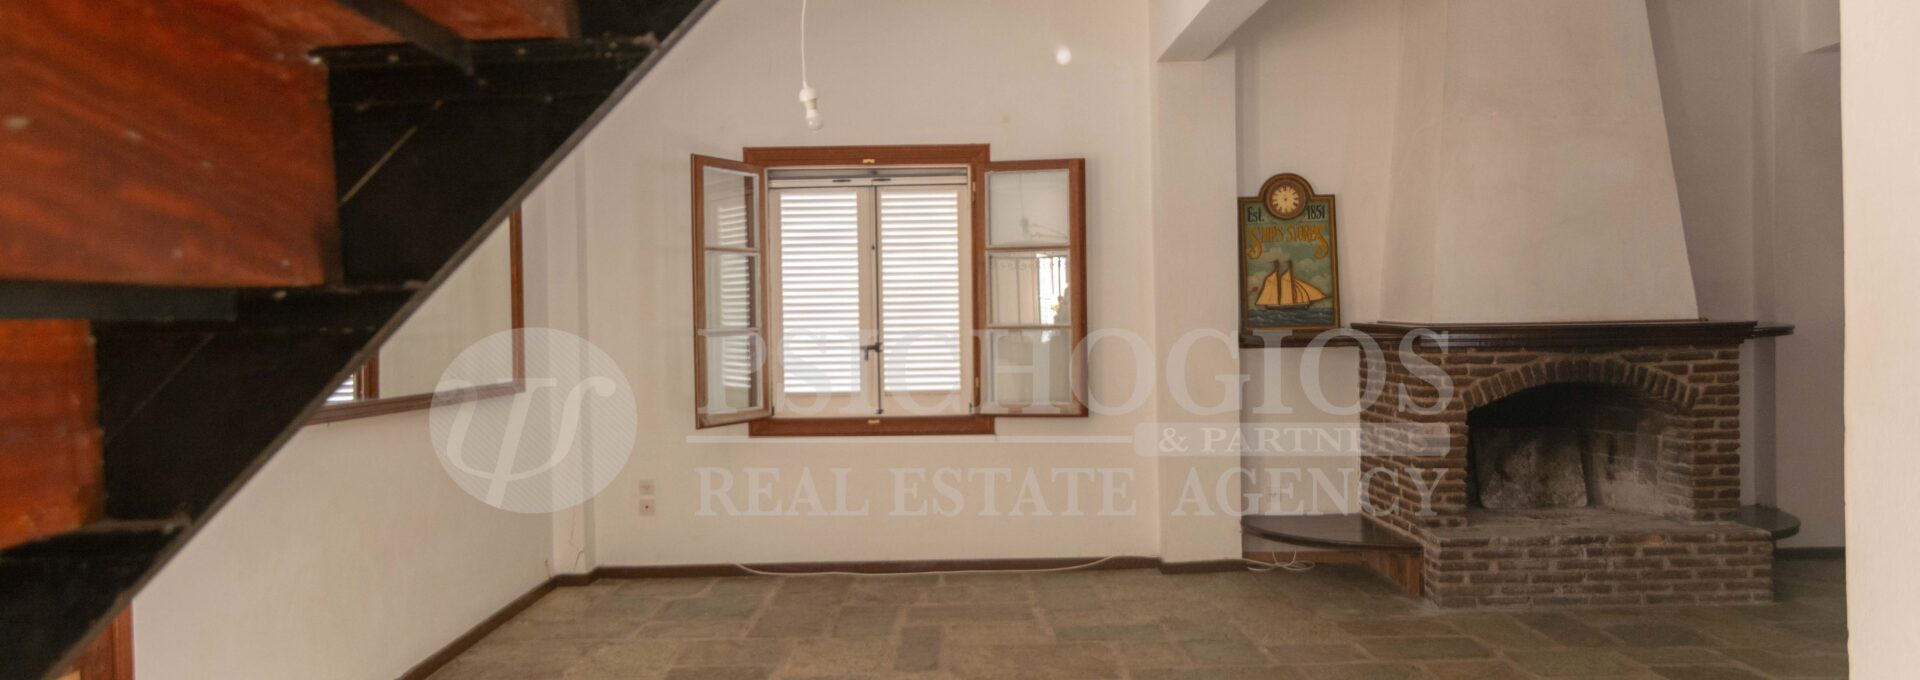 for_sale_house_200_sq.m._4_bedrooms_sea_view_spetses_greece 1 (28)